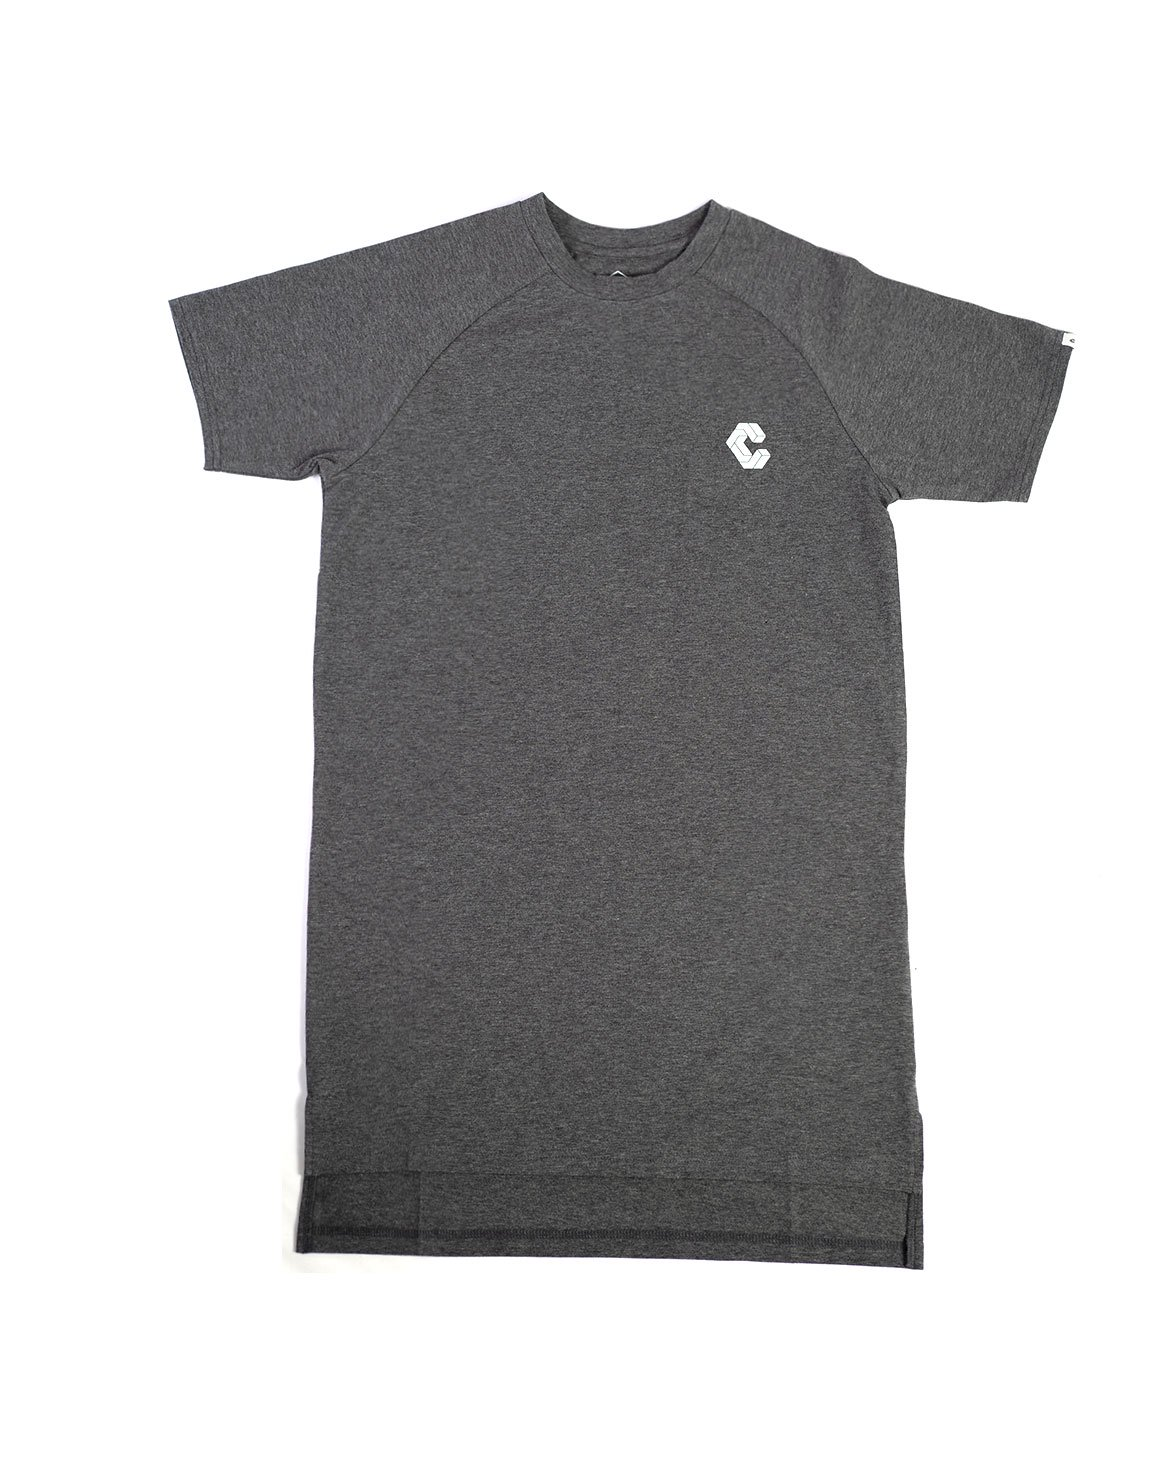 <img class='new_mark_img1' src='https://img.shop-pro.jp/img/new/icons55.gif' style='border:none;display:inline;margin:0px;padding:0px;width:auto;' />CRONOS BACK BOX LOGO FIT T-SHIRTS 【GRAY】